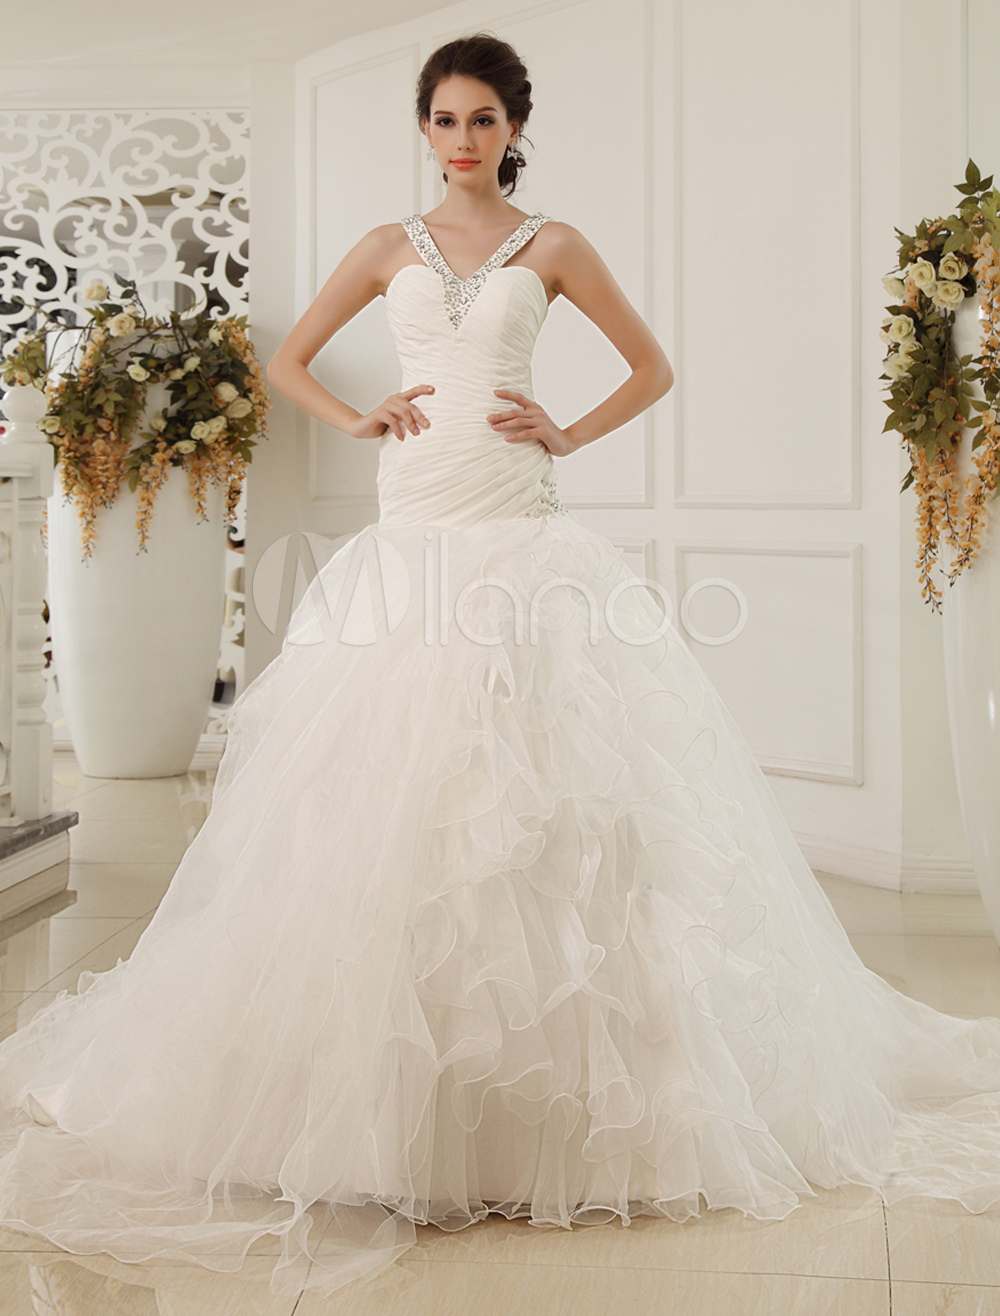 Buy Court Train A-line Sweetheart Neck Sequin Chiffon Ivory Wedding Dress Milanoo for $224.99 in Milanoo store